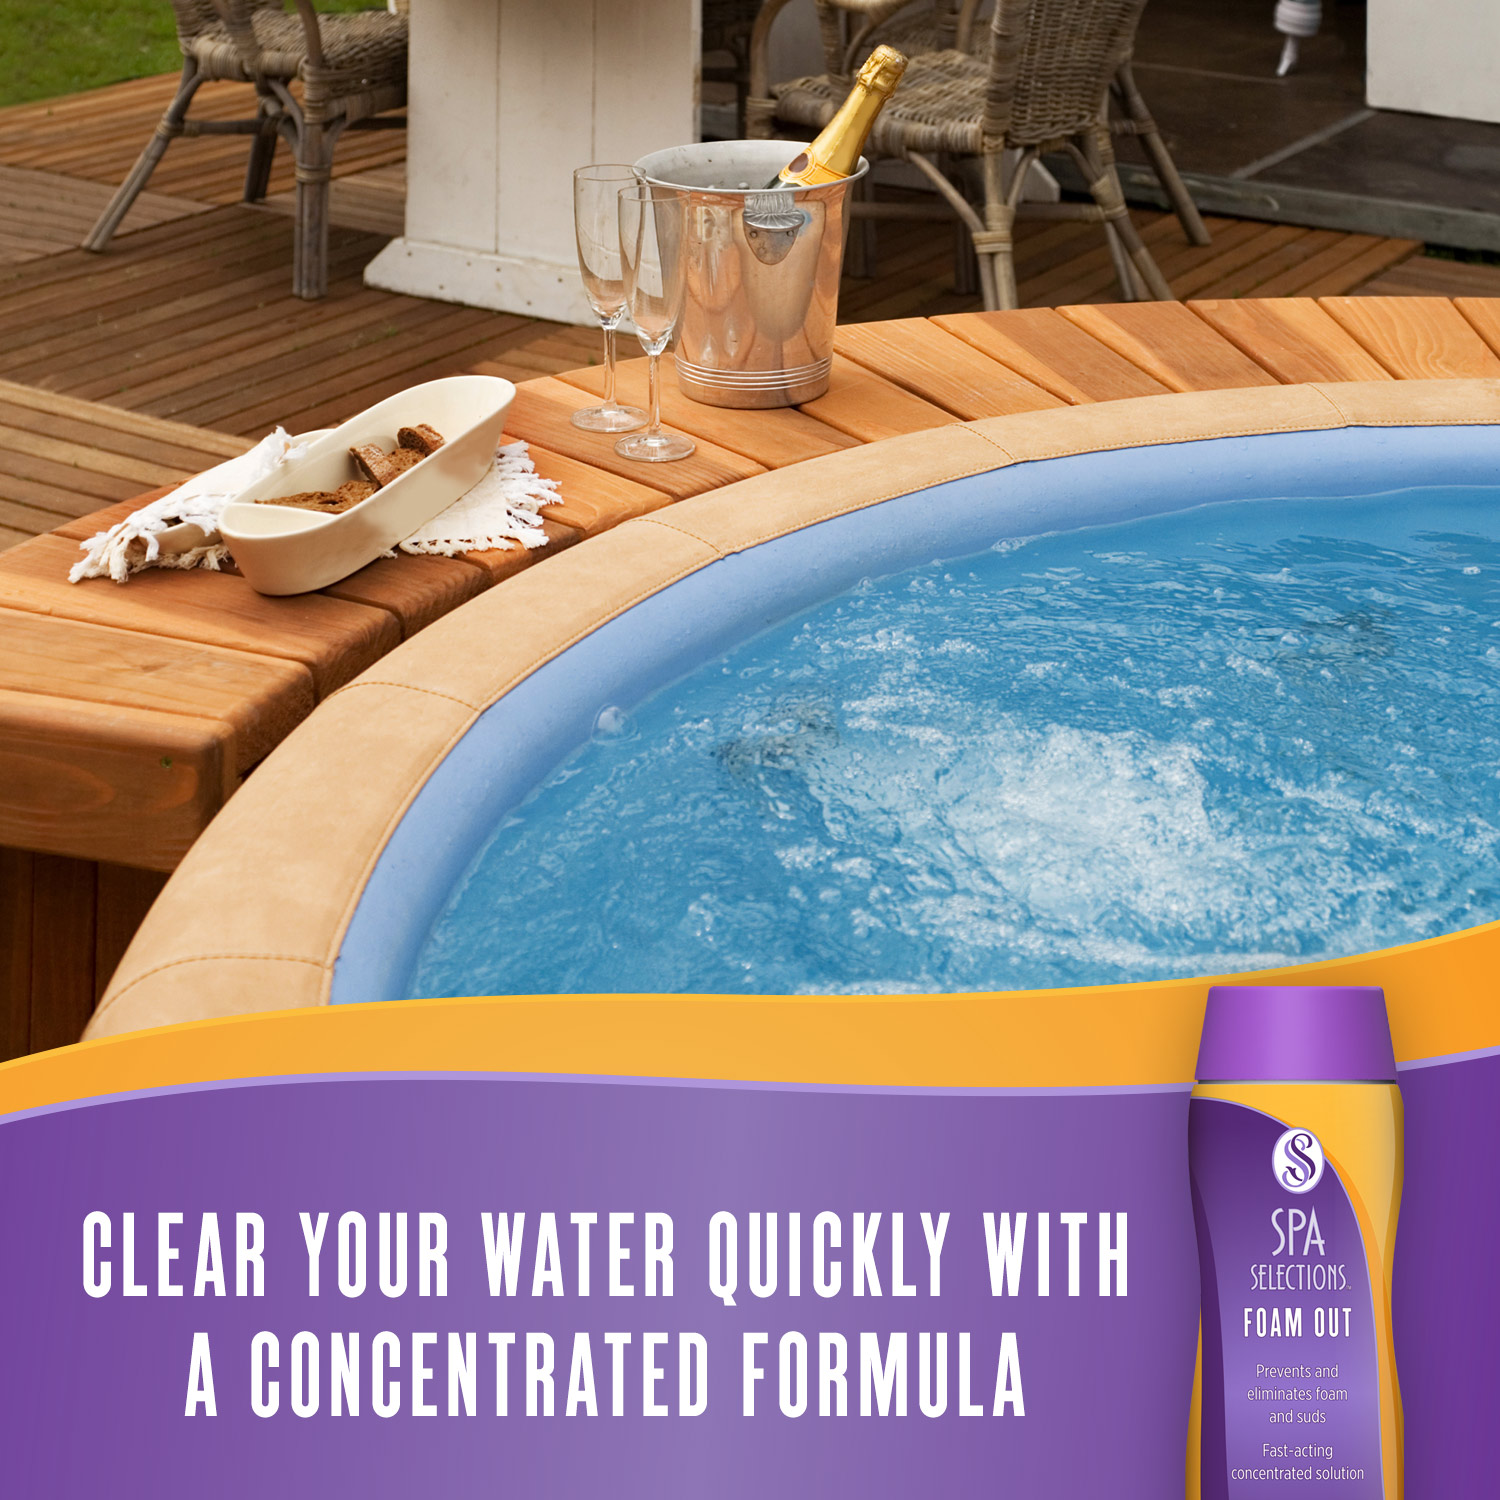 Clear your water quickly with a concentrated formula: Spa Selections Foam Out. Photo of outdoor hot tub with a bottle of champagne.